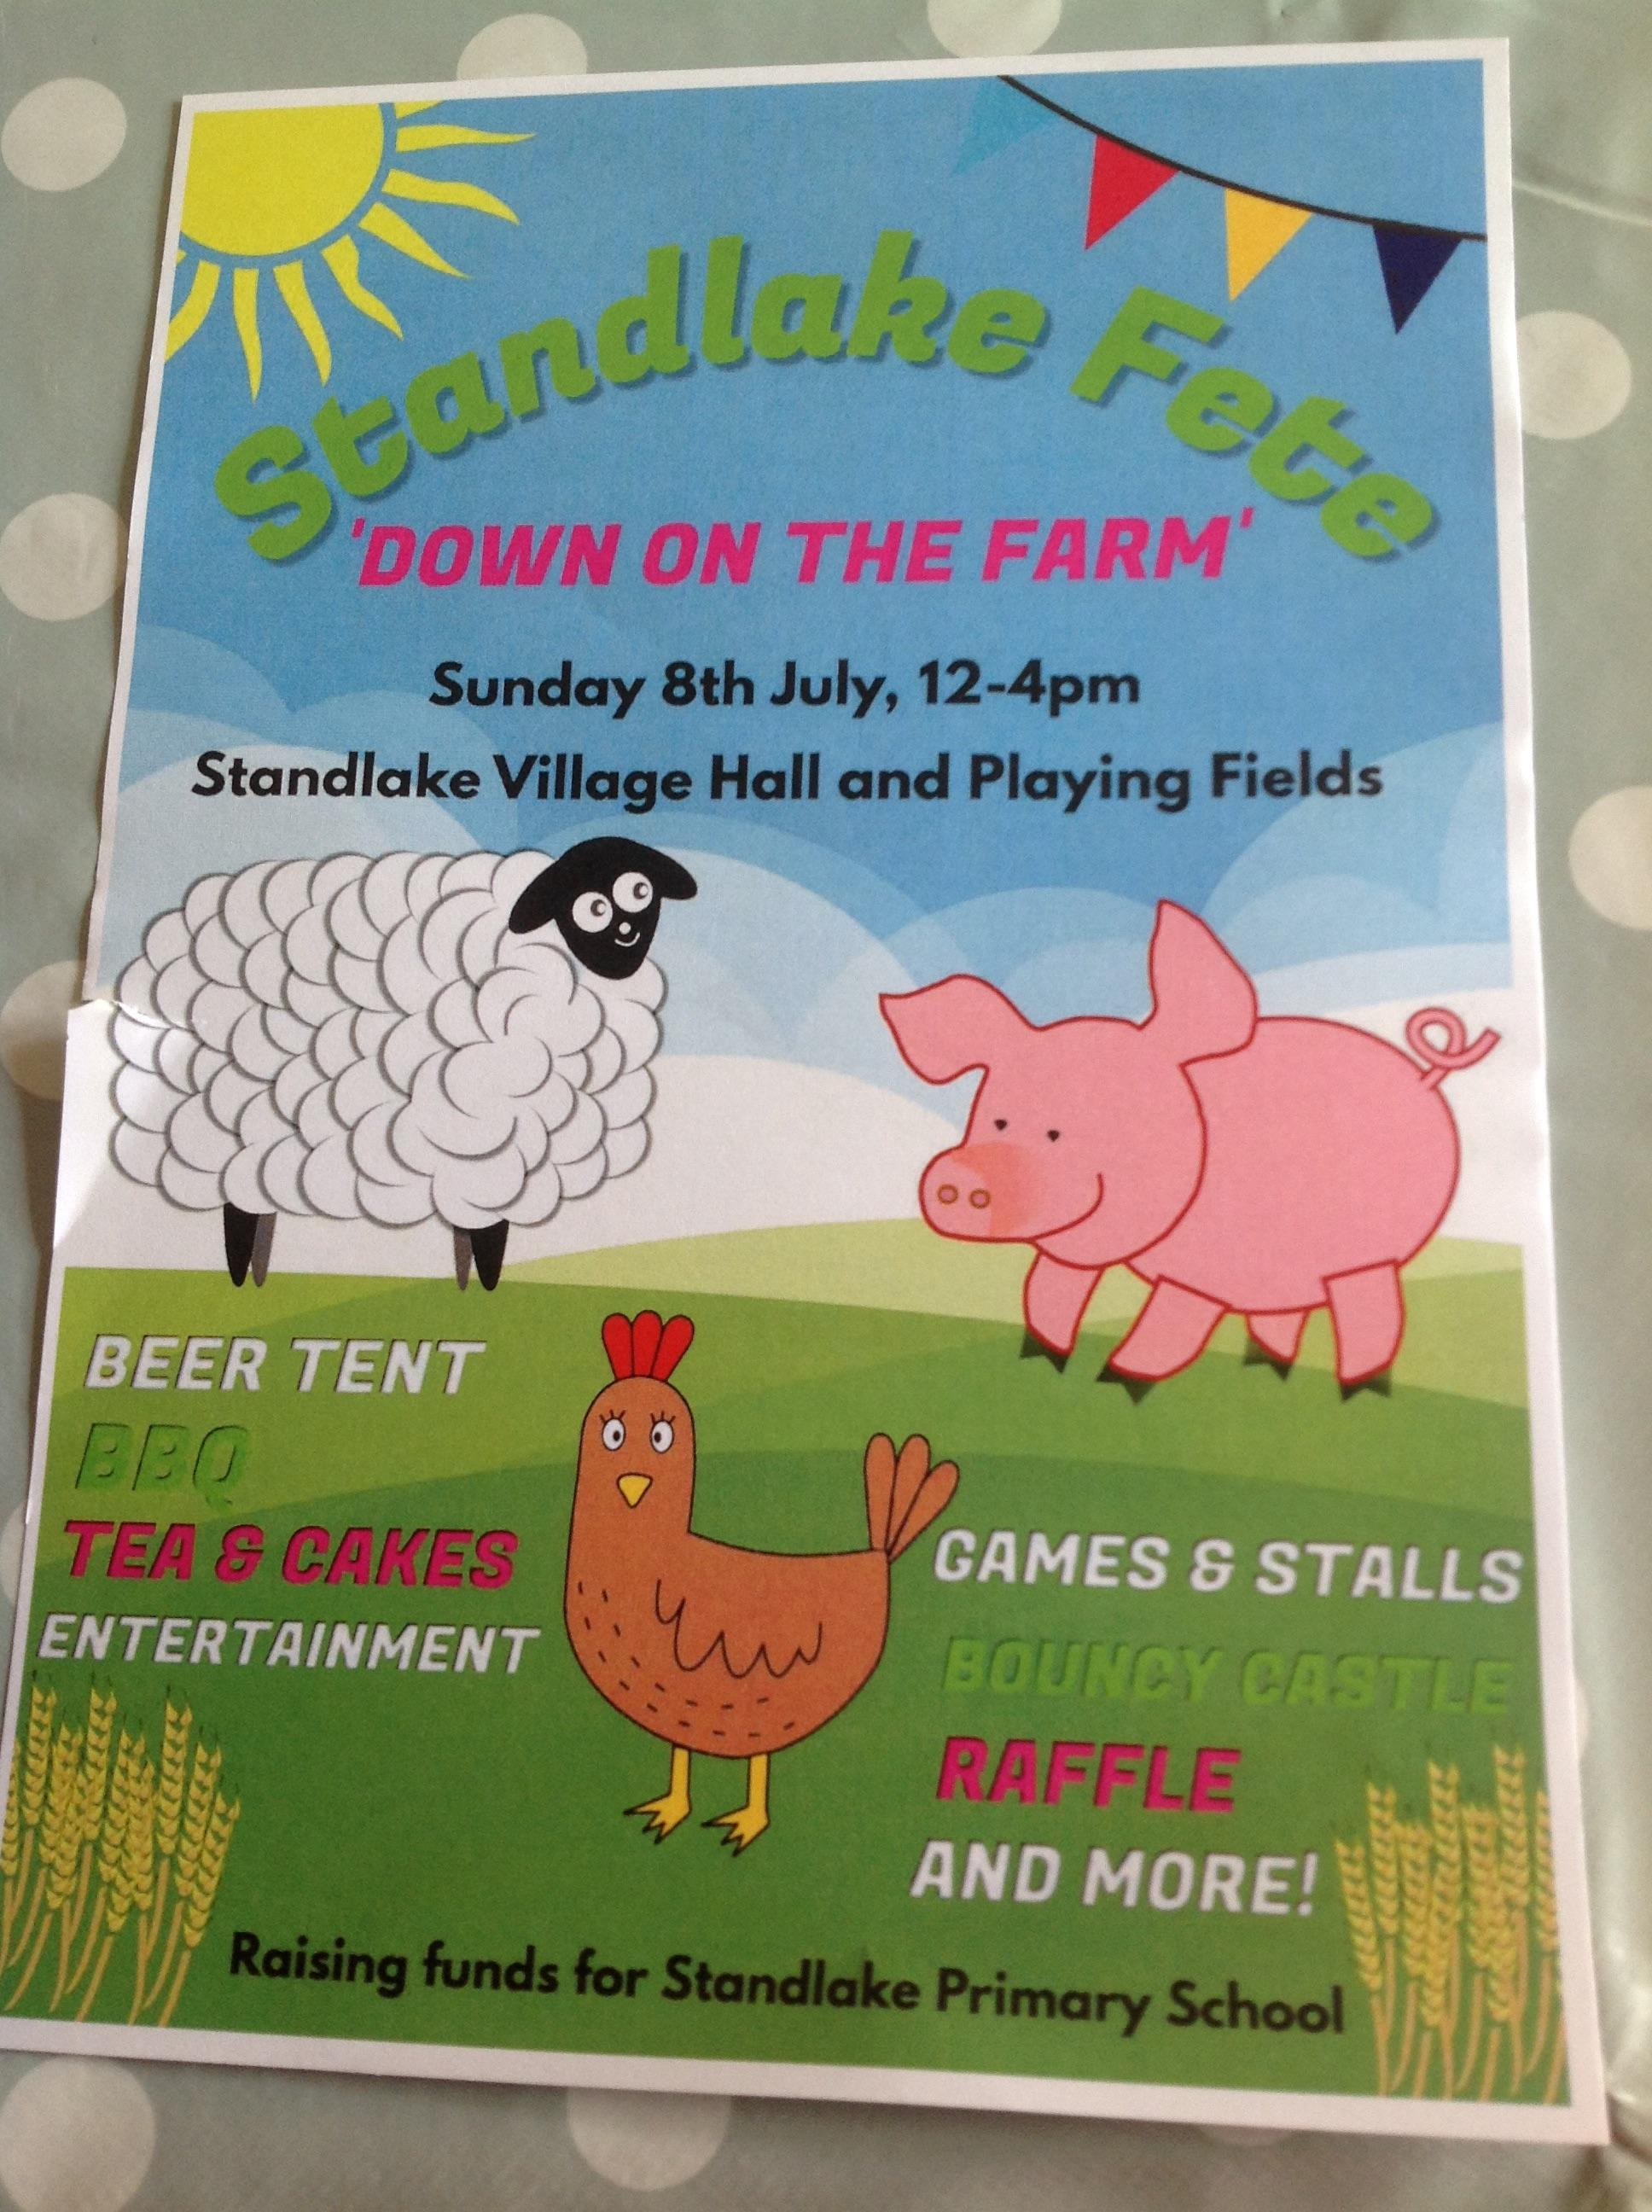 Standlake Village Summer Fete